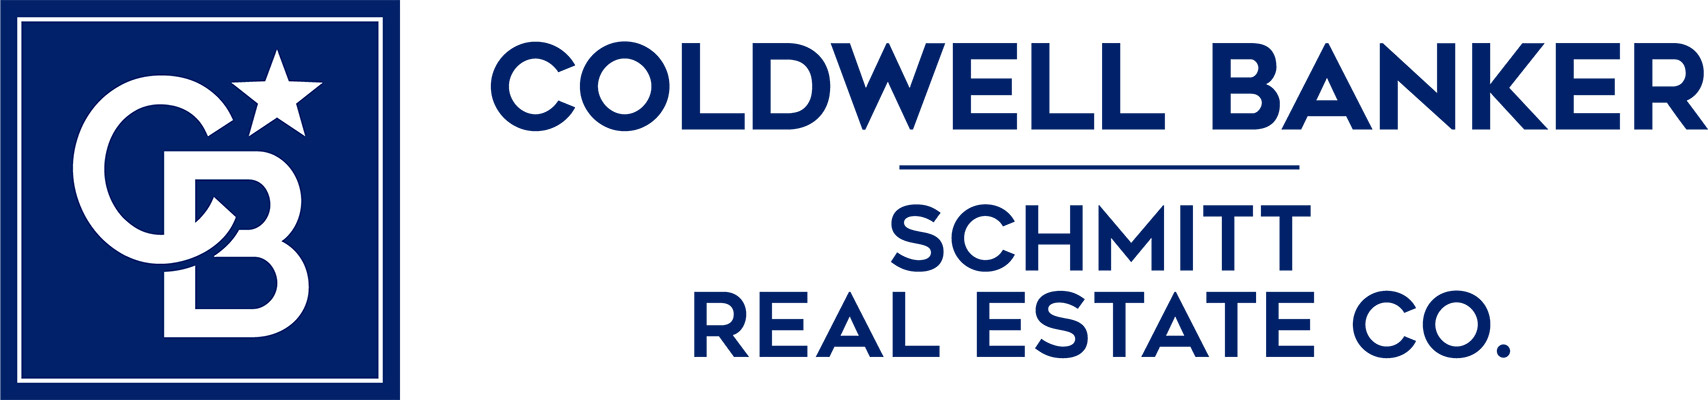 Strain-Pabotoy Real Estate Team - Coldwell Banker Schmitt Logo